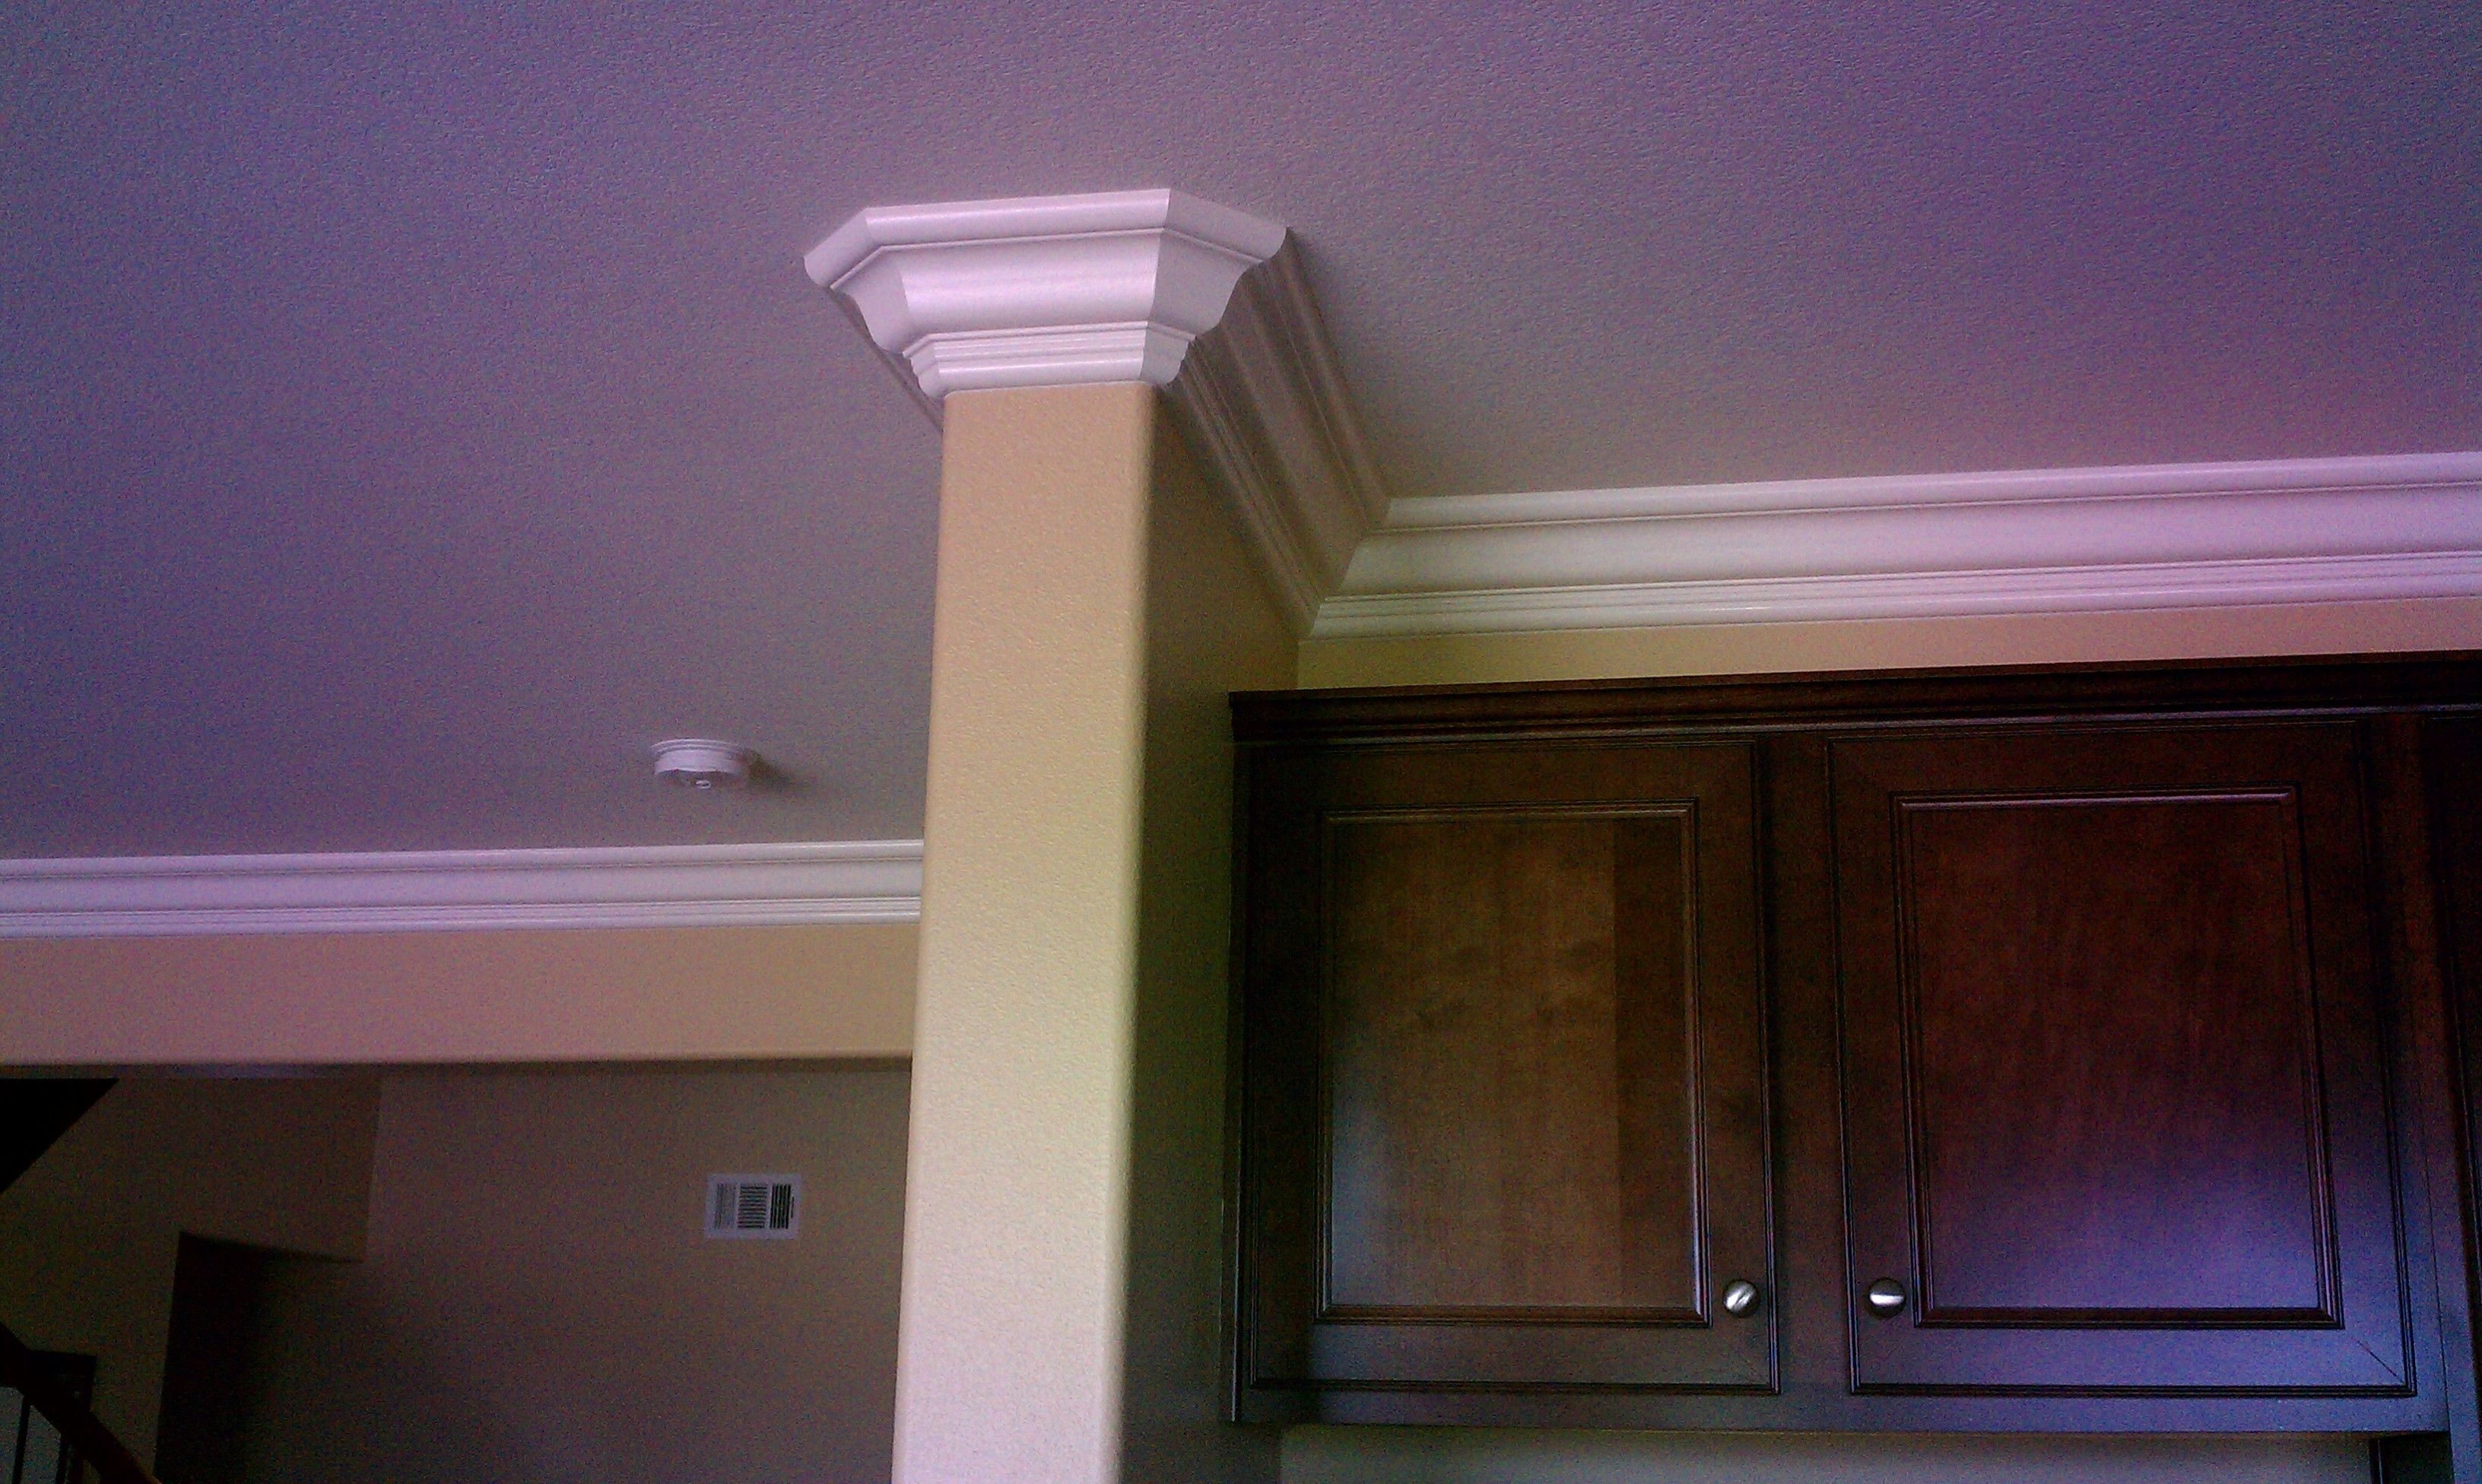 3 Piece Outside Corner Crown Molding